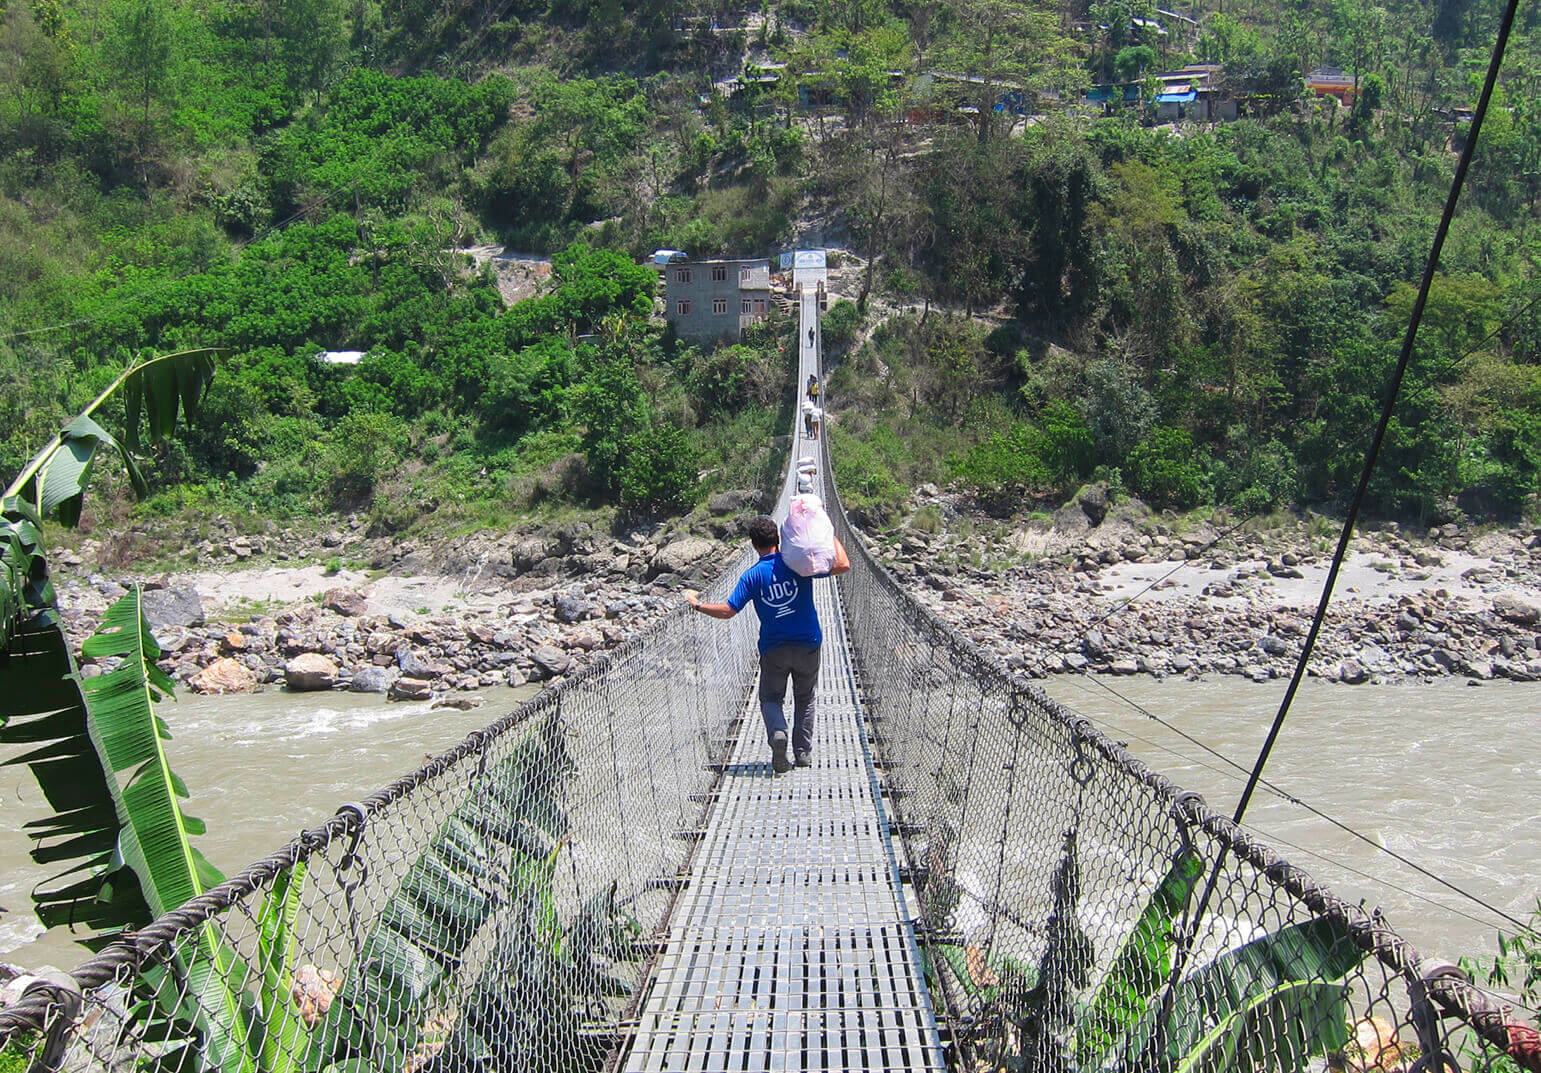 JDC aid worker carrying a large white package over his shoulder while crossing a rope bridge.